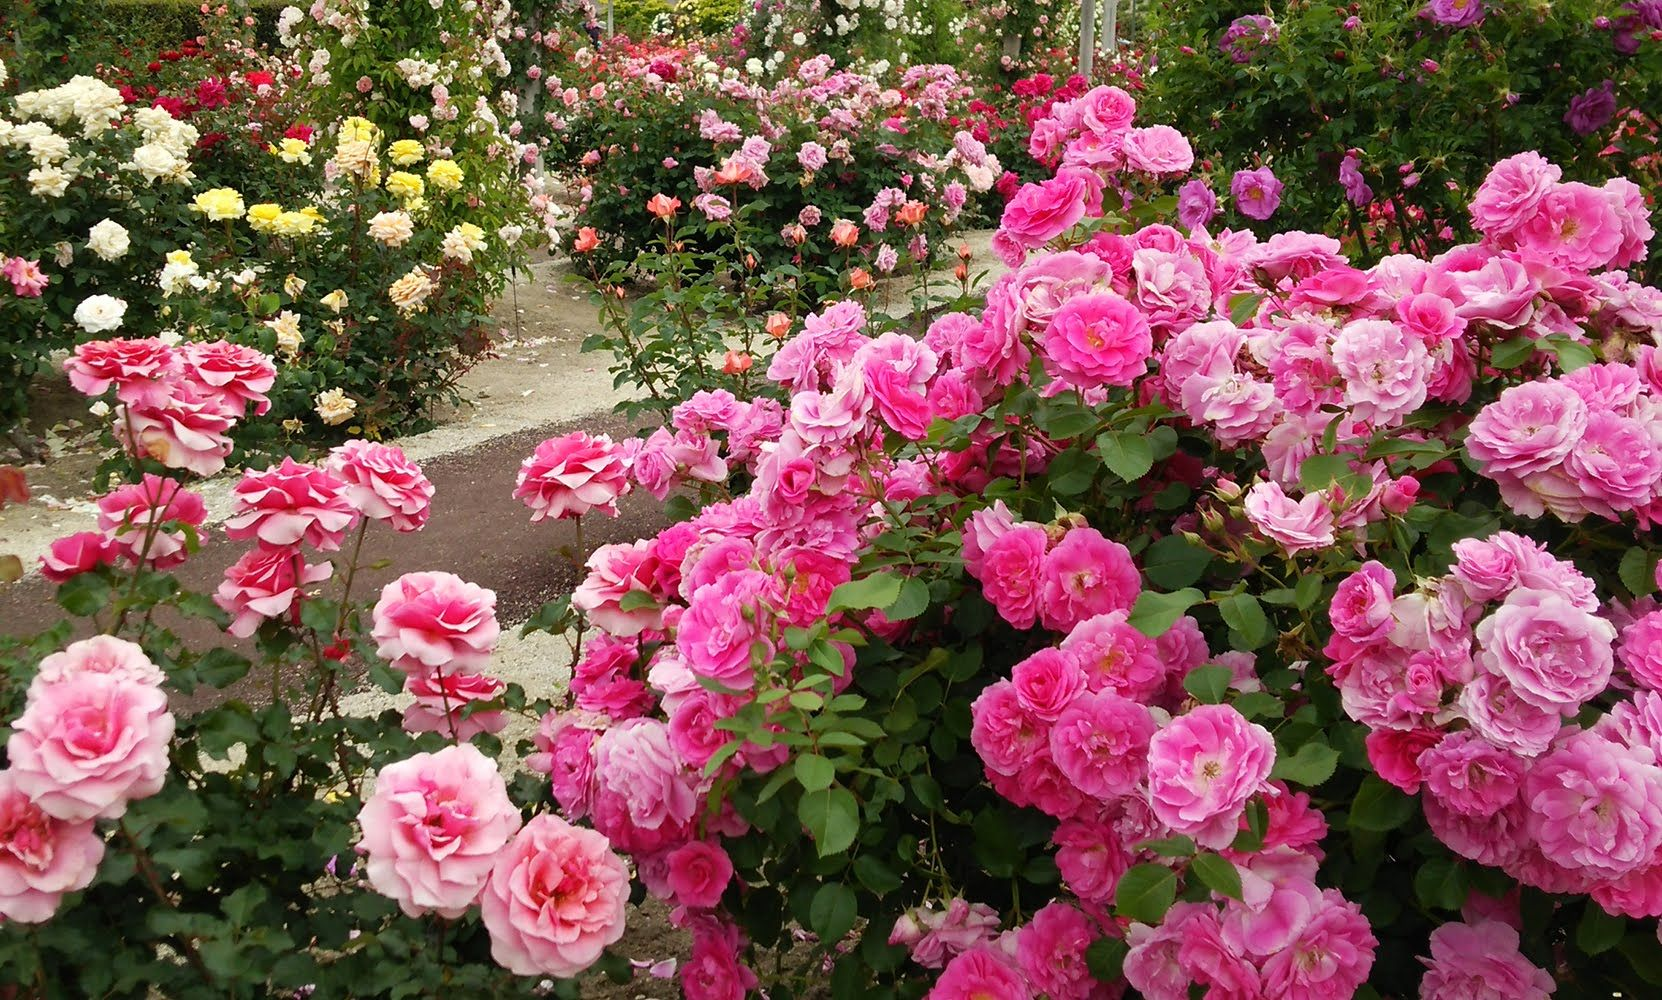 4k Most Beautiful Rose Flowers Flower Shrubs And Colorful Garden